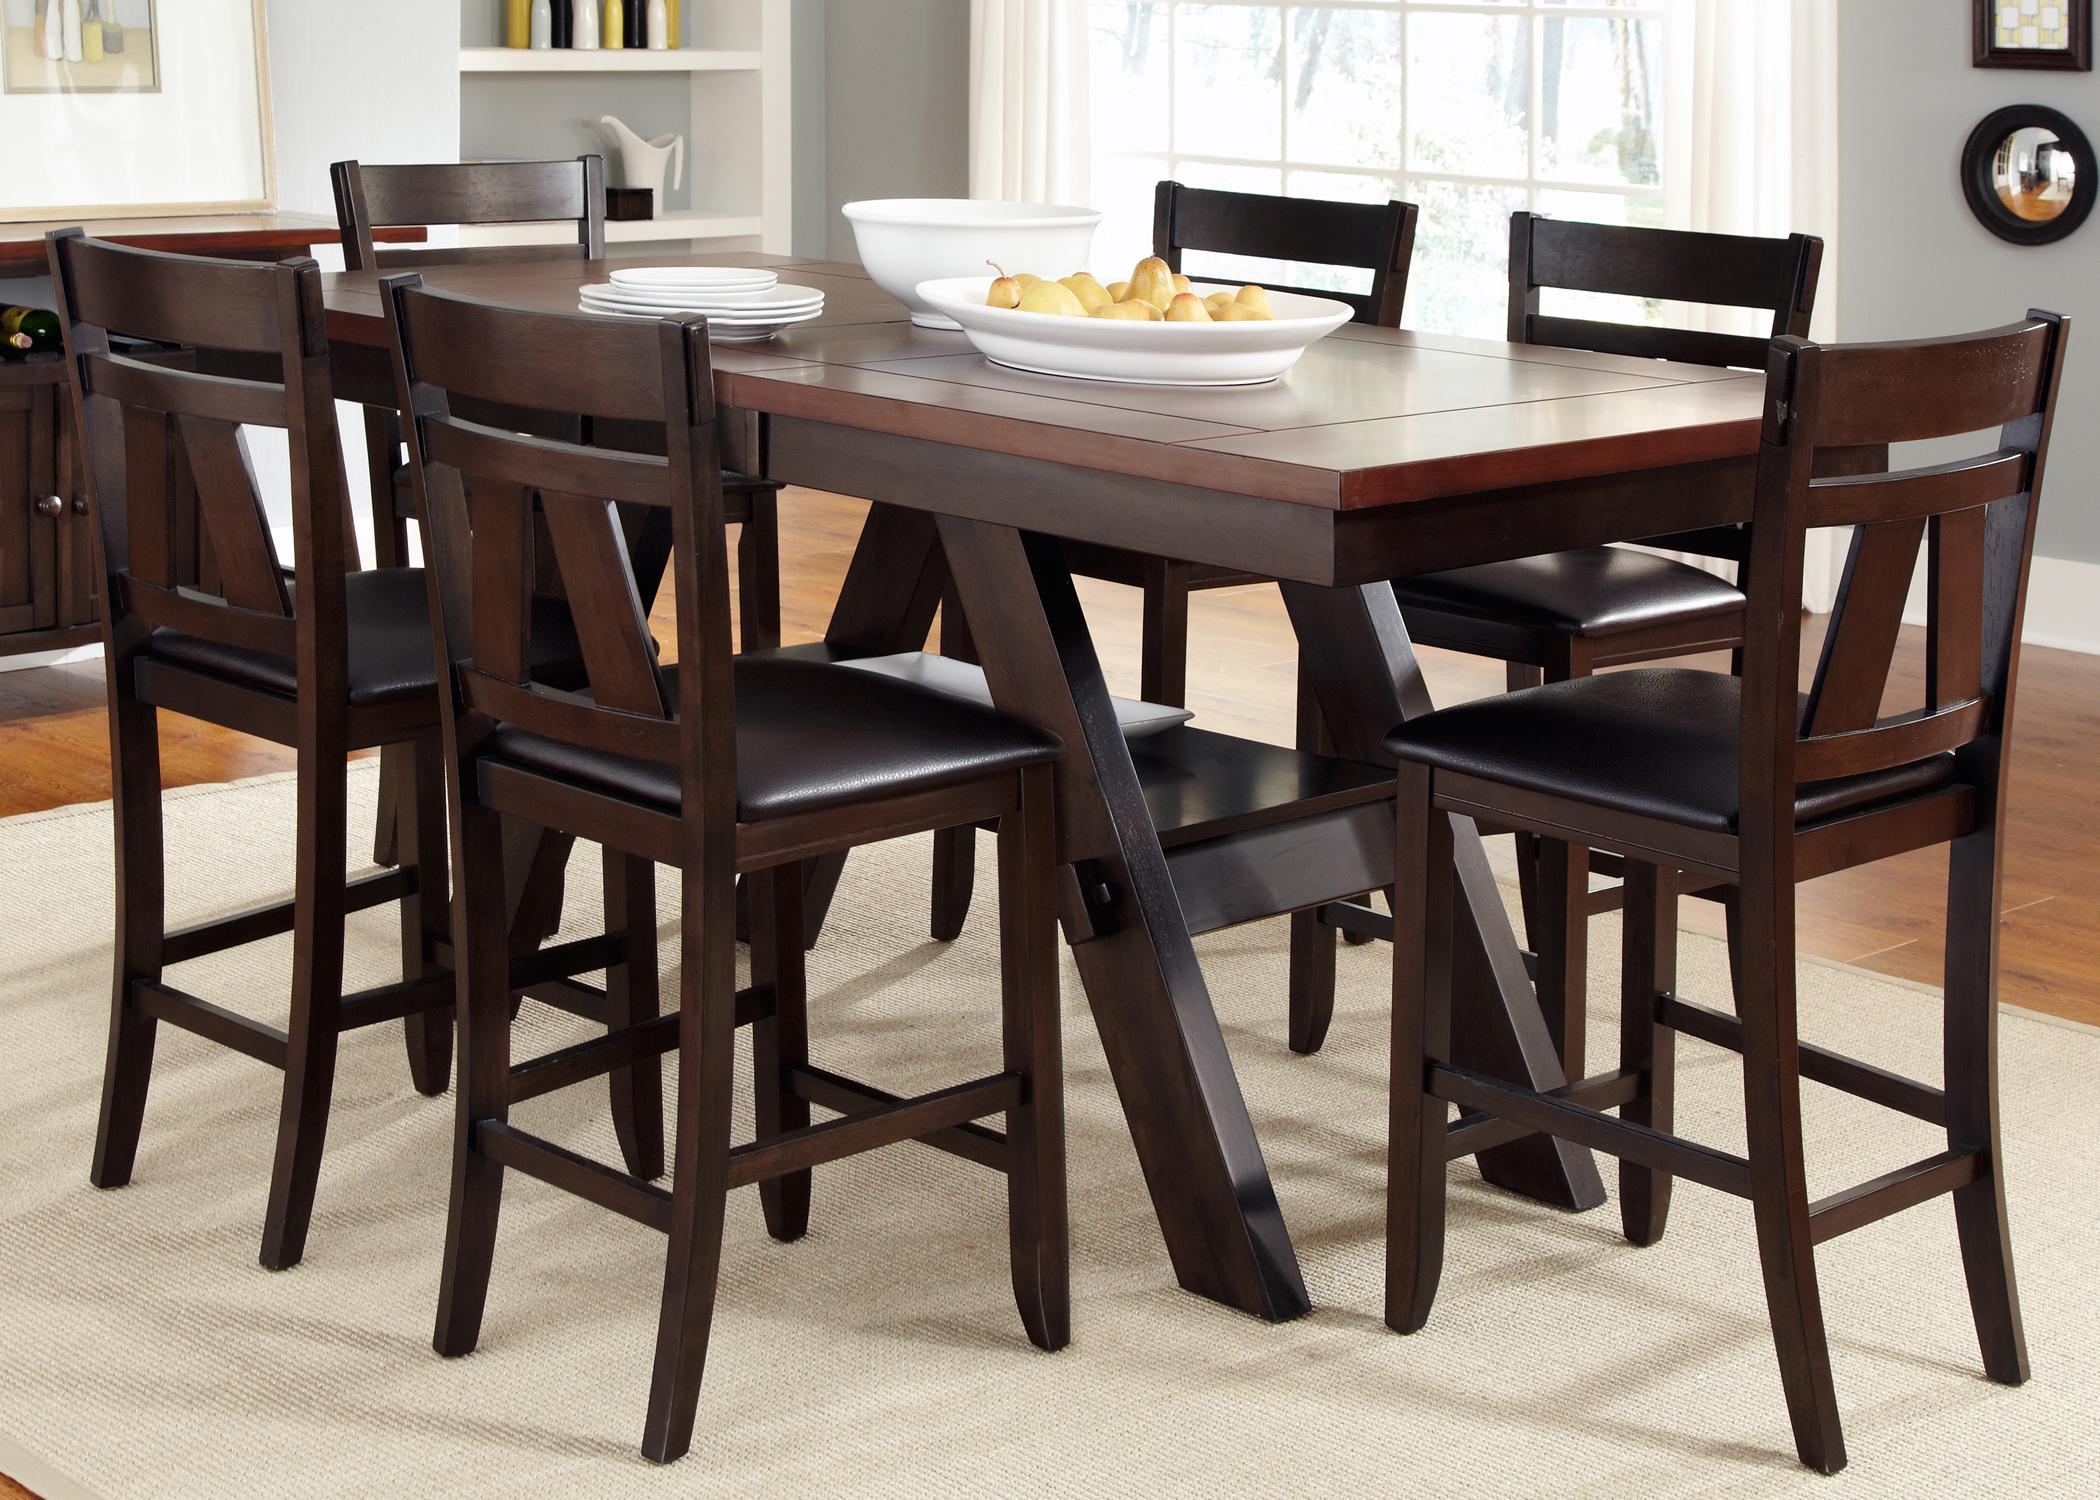 7 Piece Trestle Gathering Table with Counter Height Chairs Set by ...